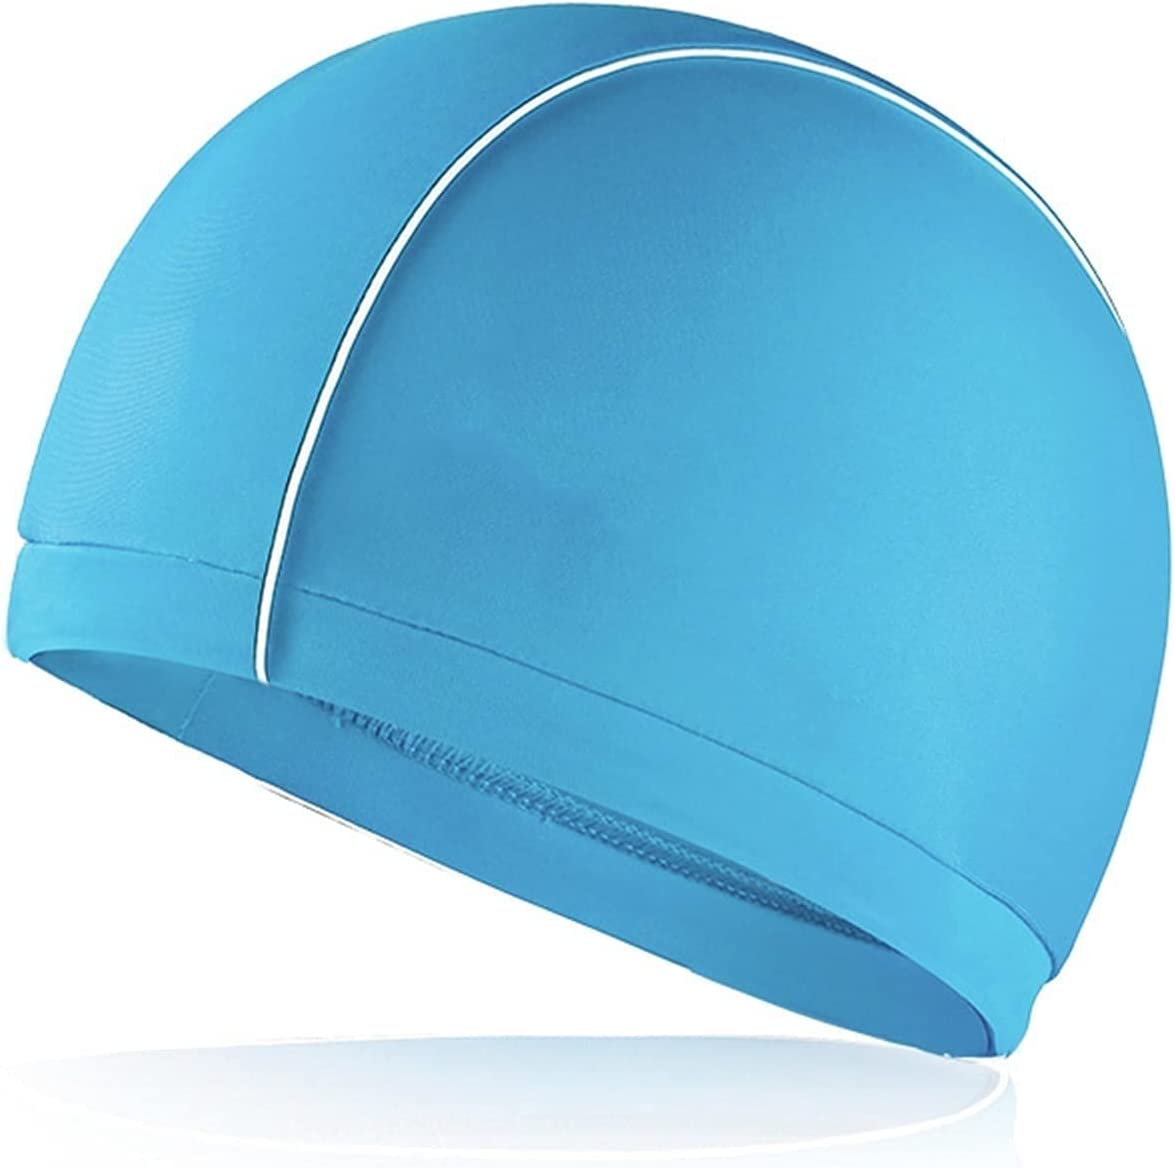 shanxihuangfu Swimming Cap ,Long Hair Men Product Ears Seattle Mall Wate Protection